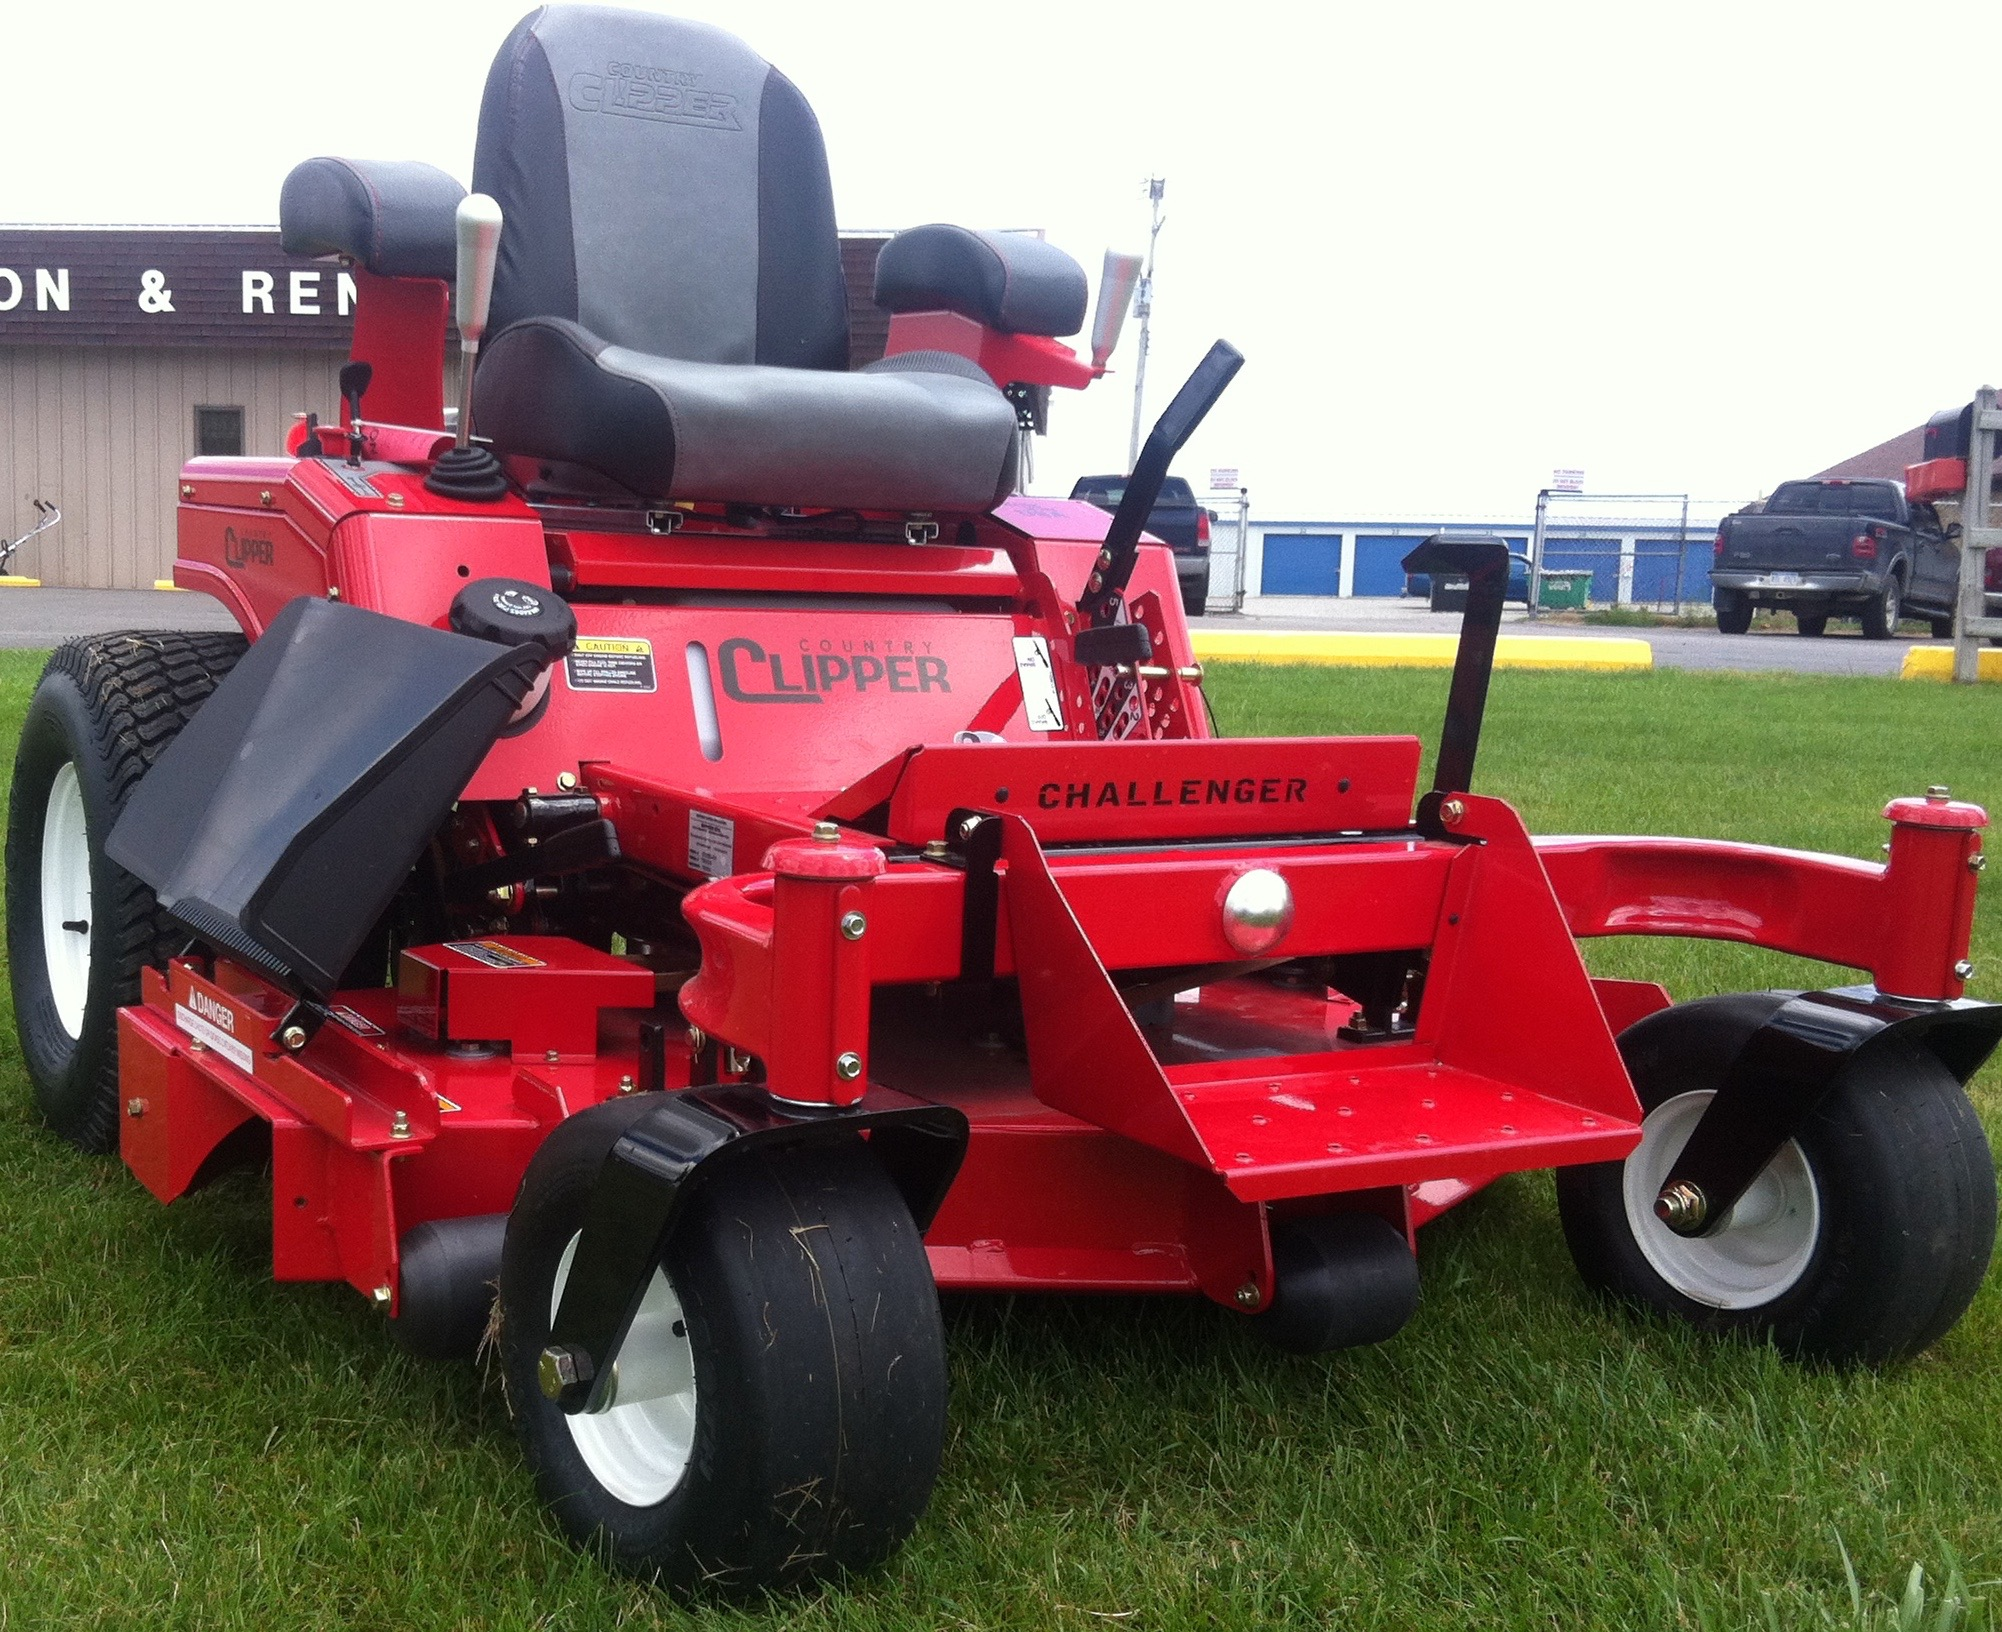 Booms Inc. Country Clipper Challenger Lawn Mower.jpg